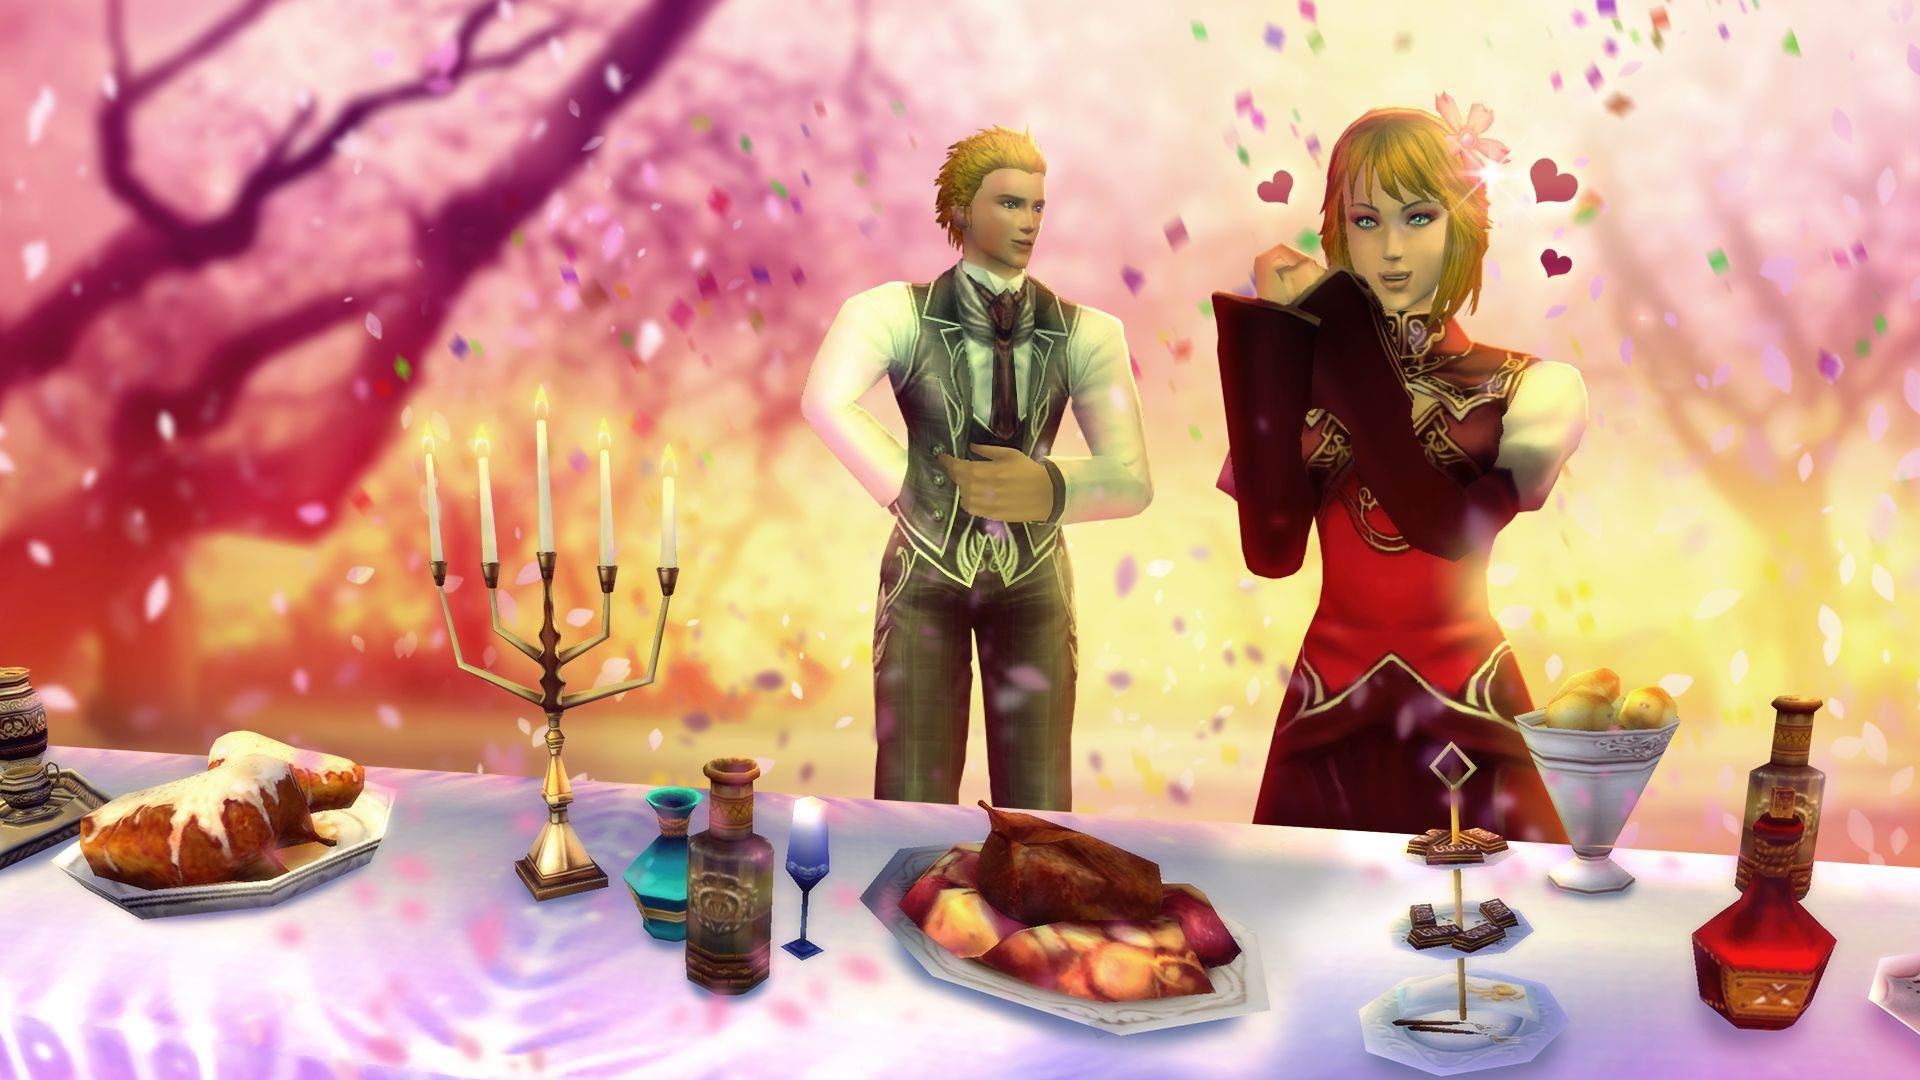 7789-valentines-dinner-png